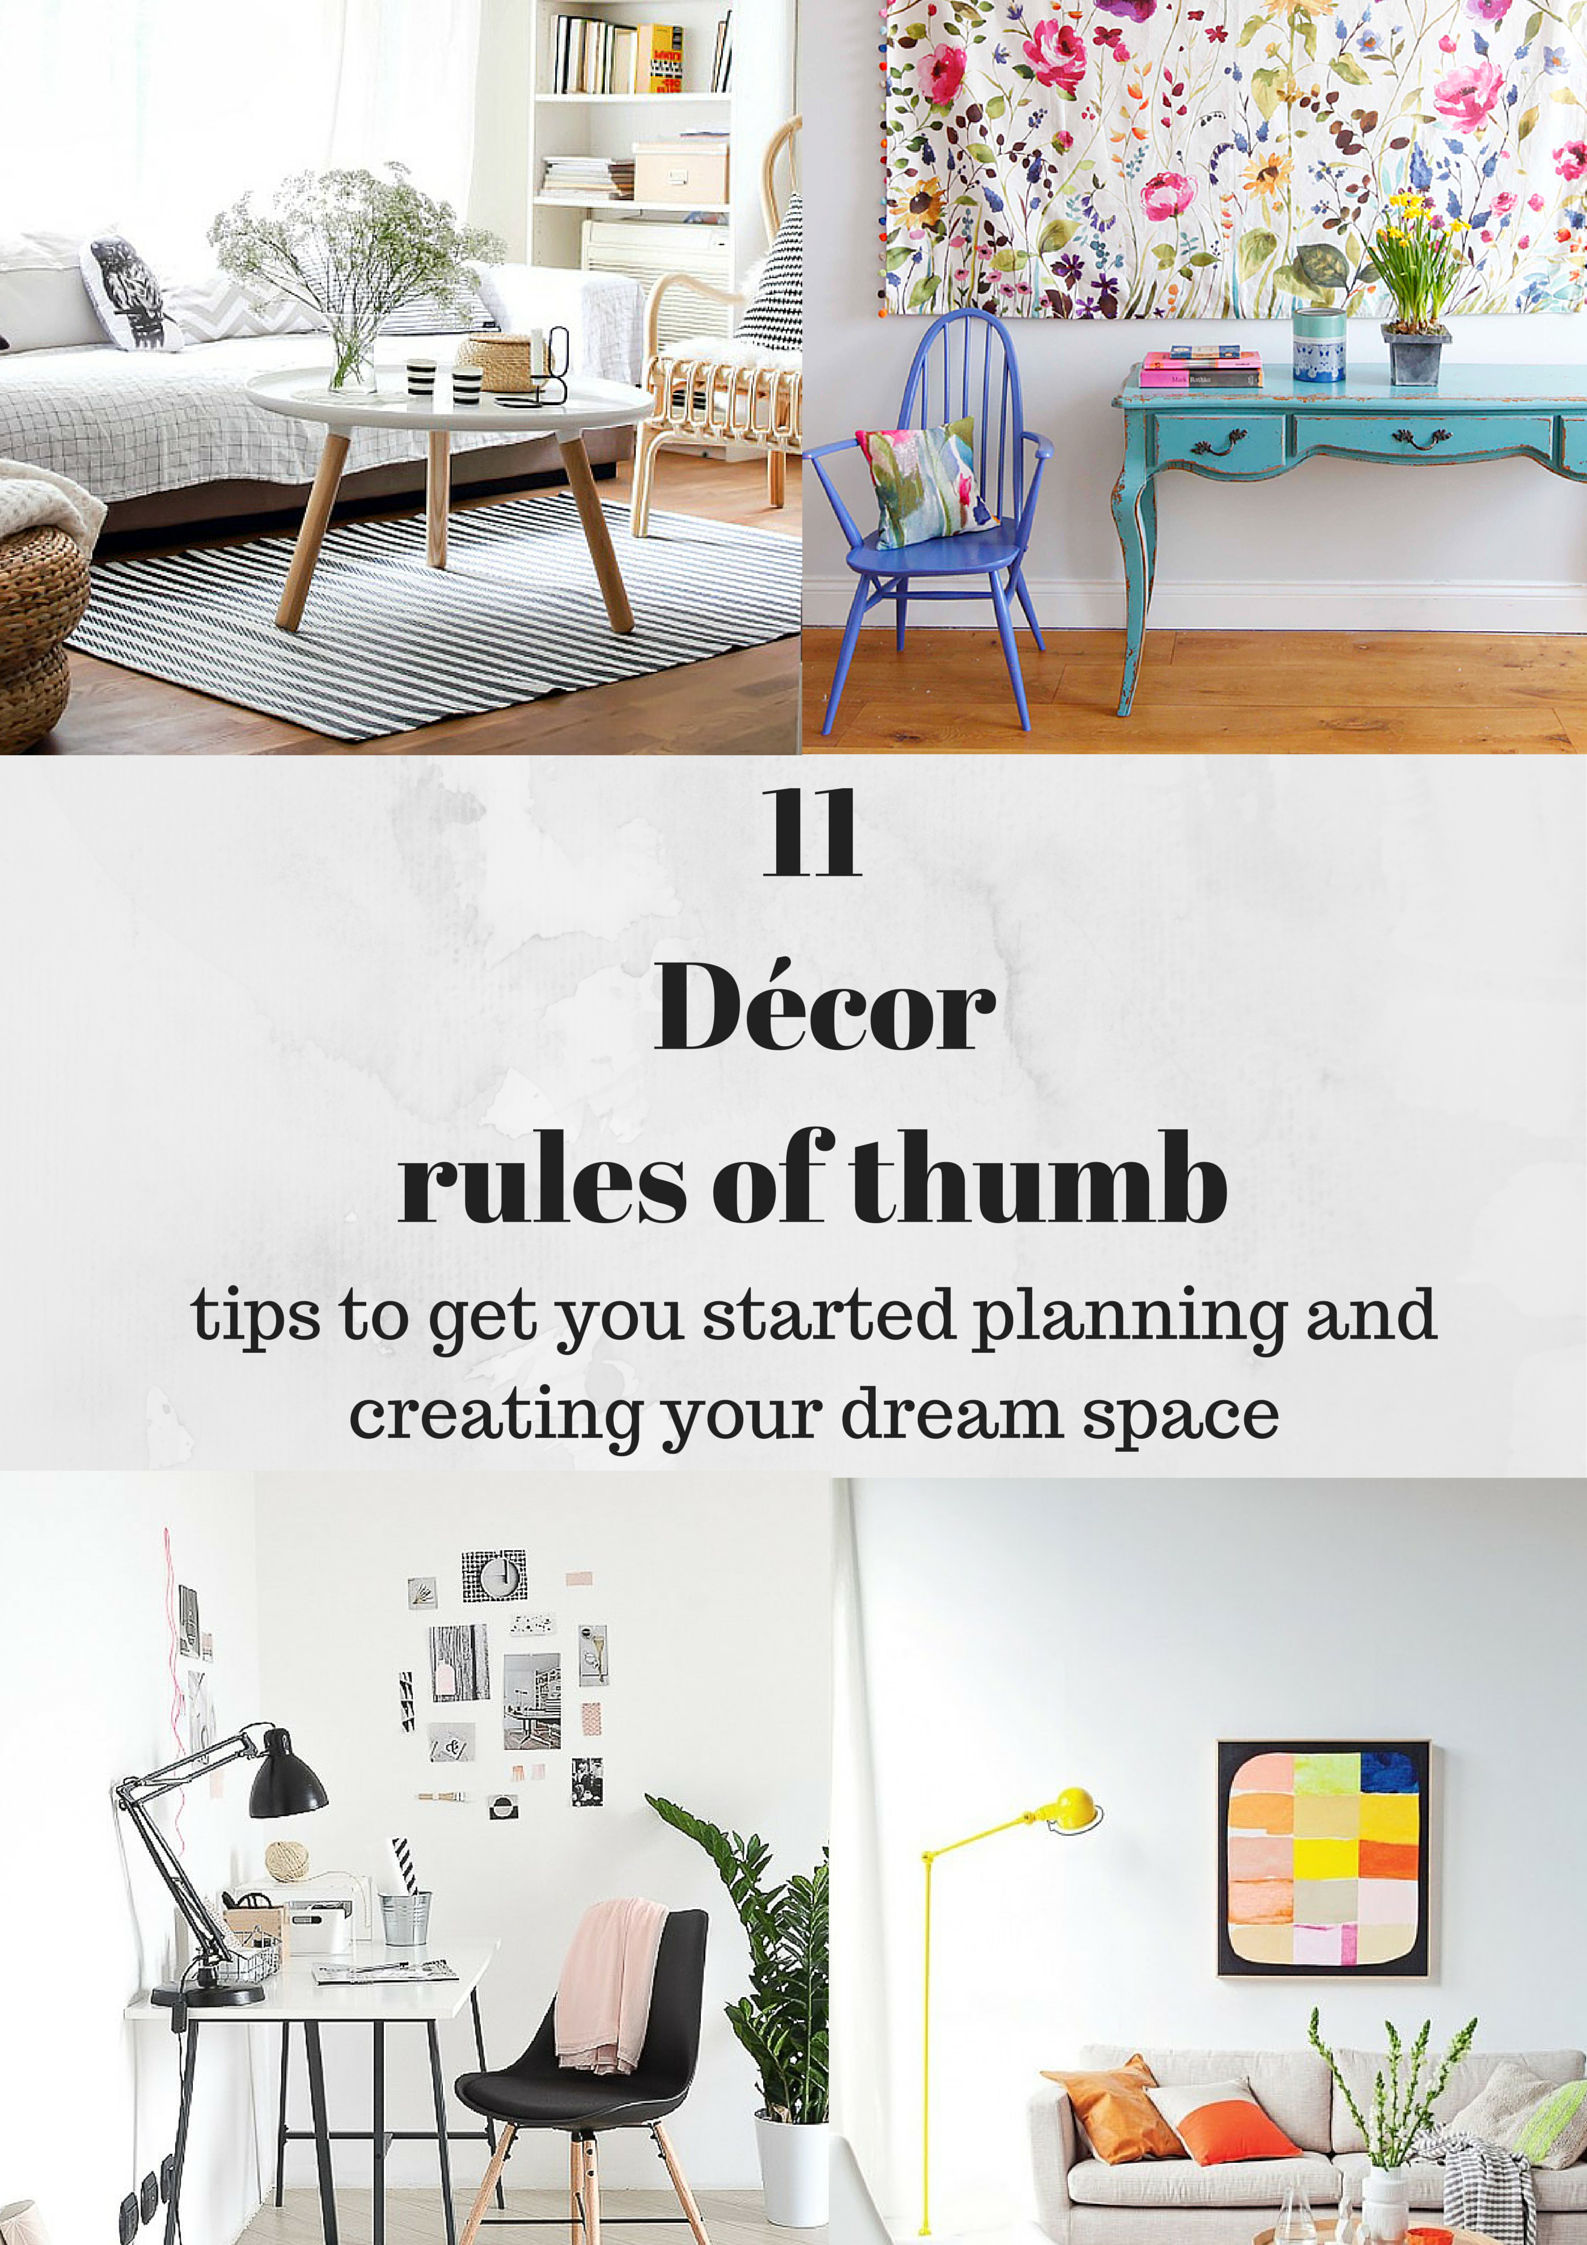 10 Rules of Thumb for Decorating the Entryway - Porch Advice